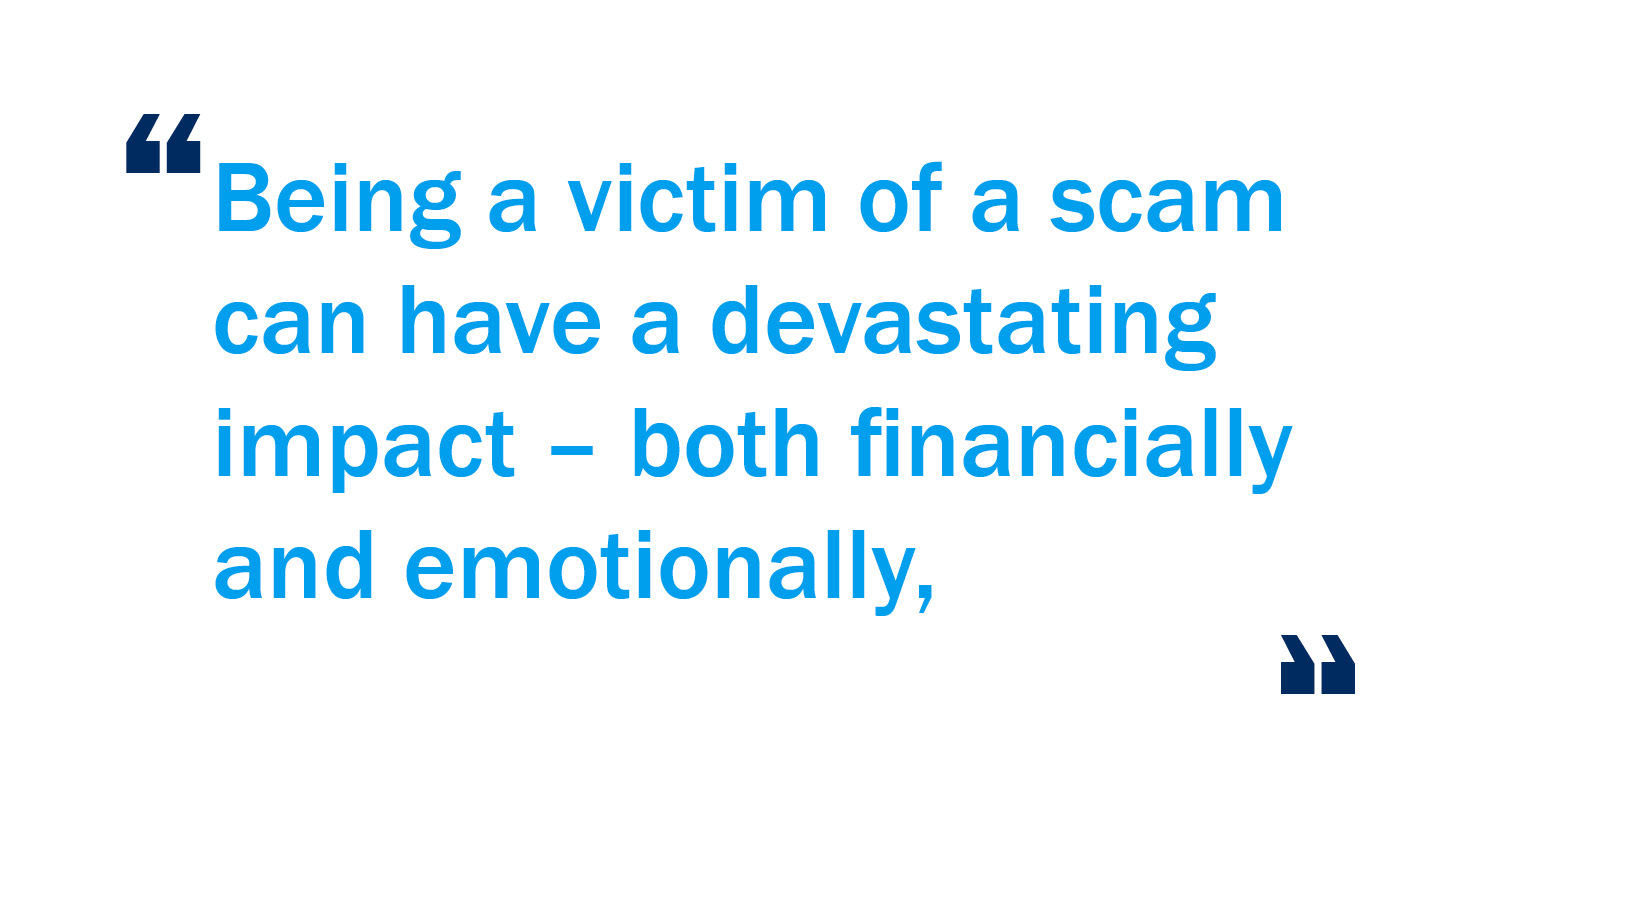 Fighting scams